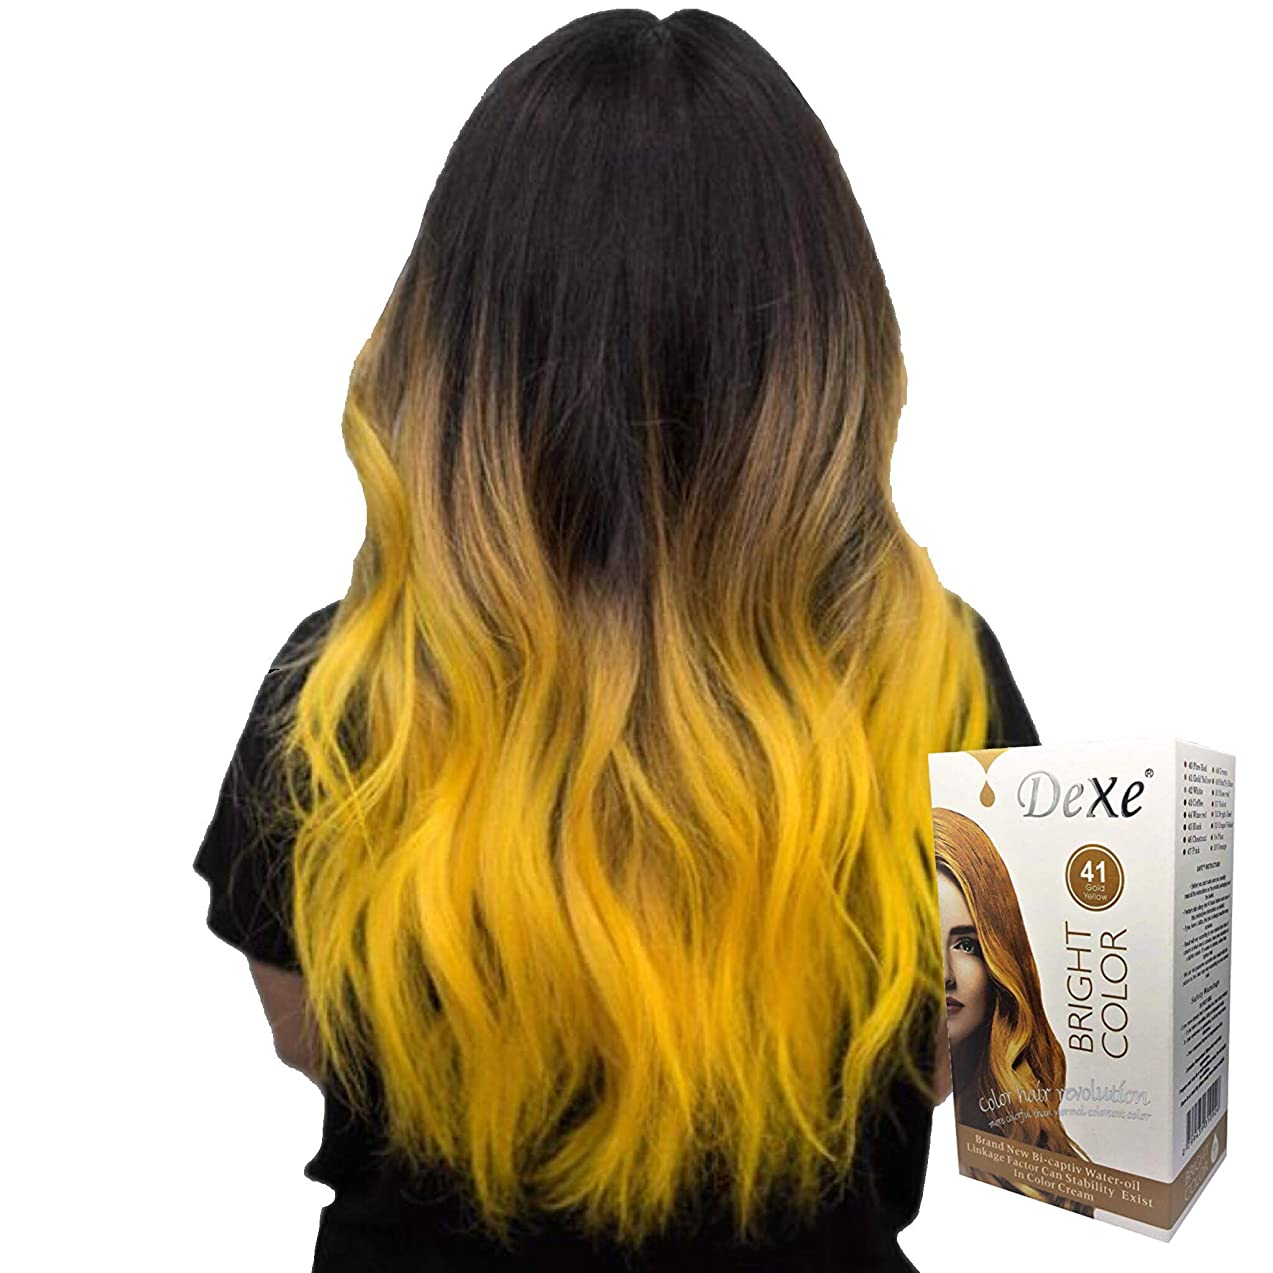 Dexe Bright Color Gold Yellow 180 ml, Revolutionary Hair color cream, Permanent hair color, Hair dye, Highlights, Blond